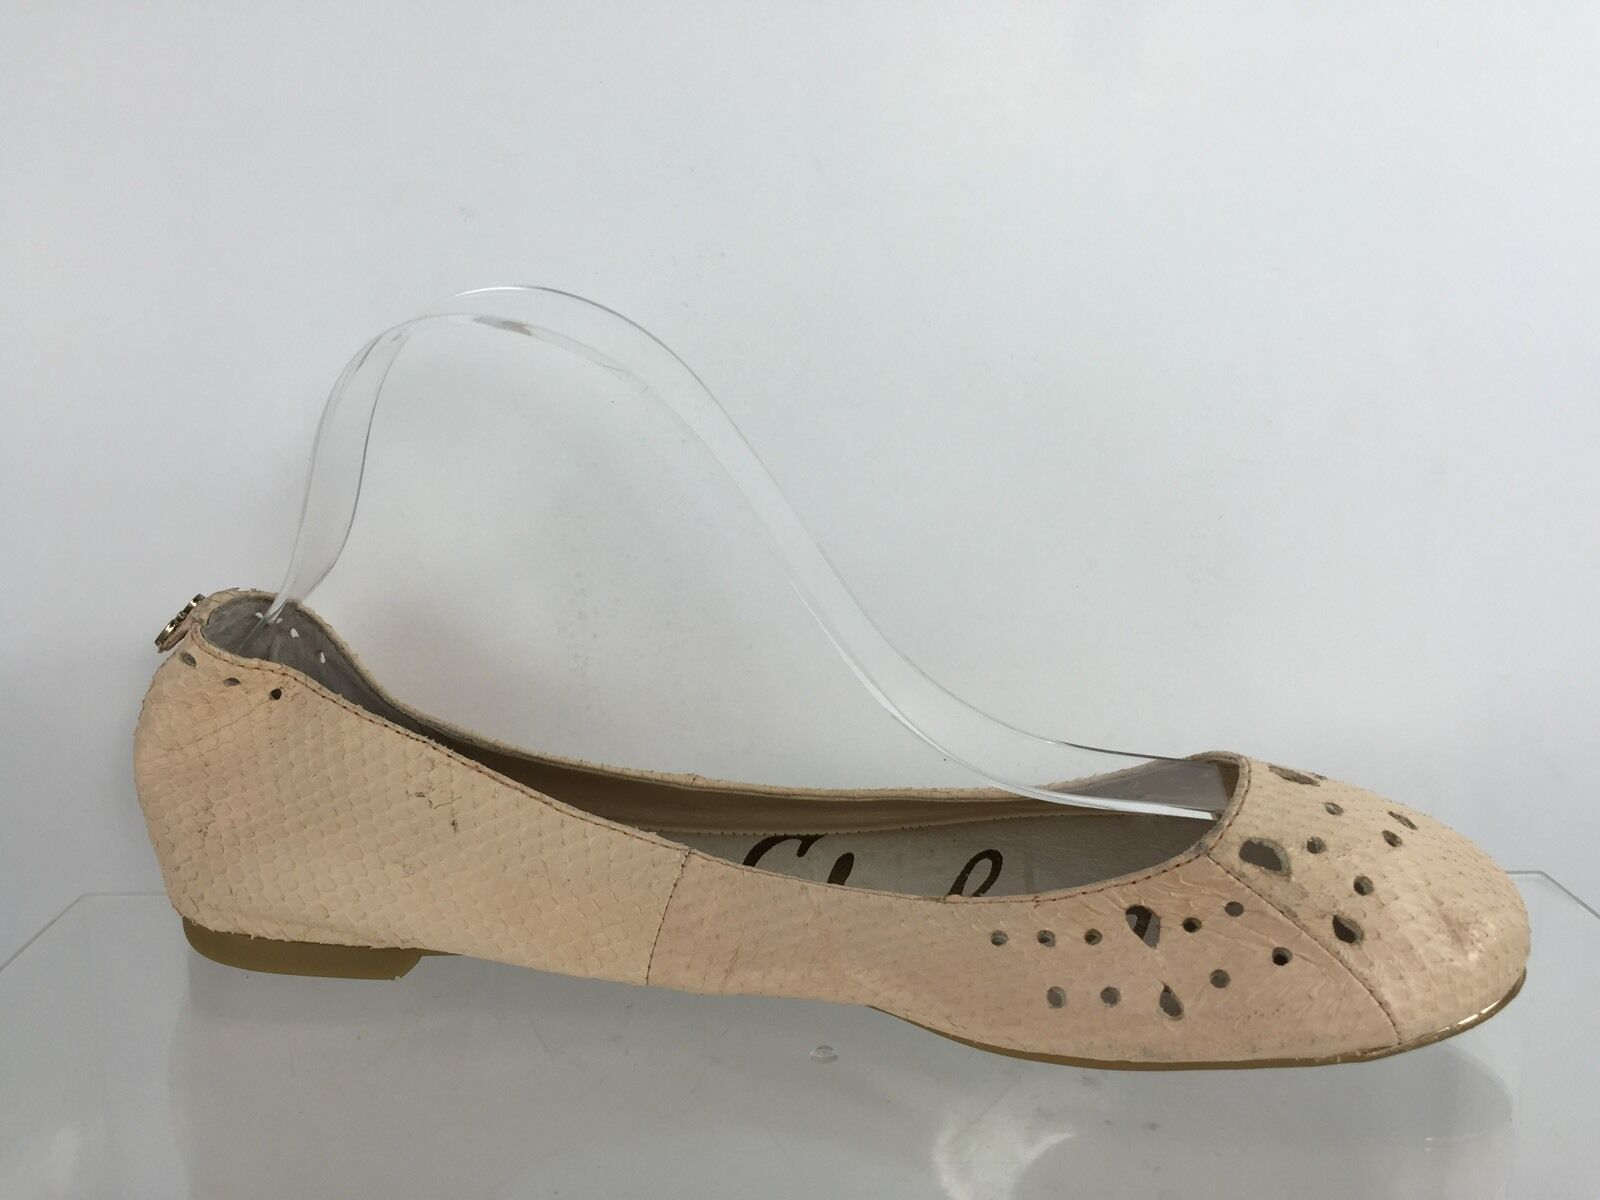 Sam Edelman Womens Pale Pink Leather Flats 8.5 M M M dd43a2